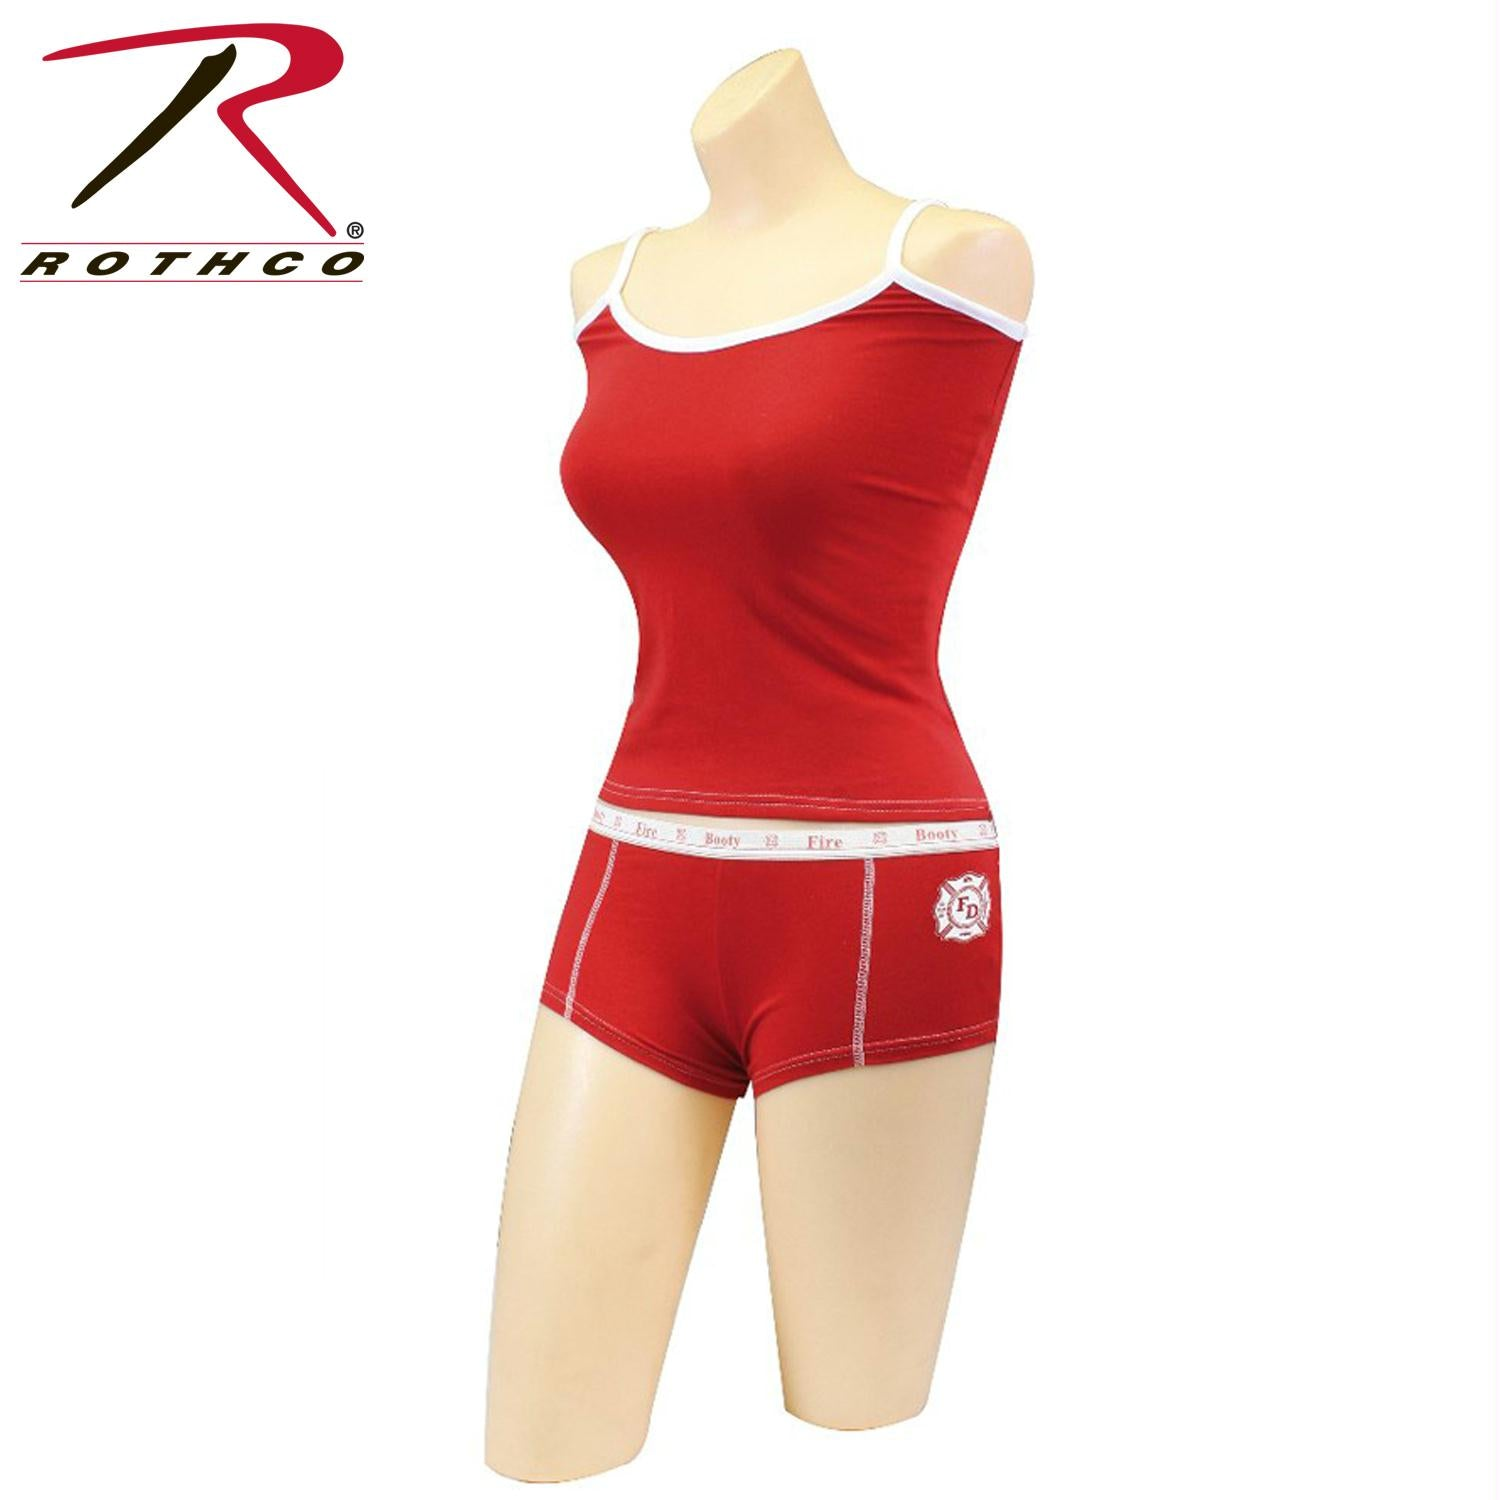 Rothco Red Firefighter ''Hot Booty'' Booty Shorts & Tank Top